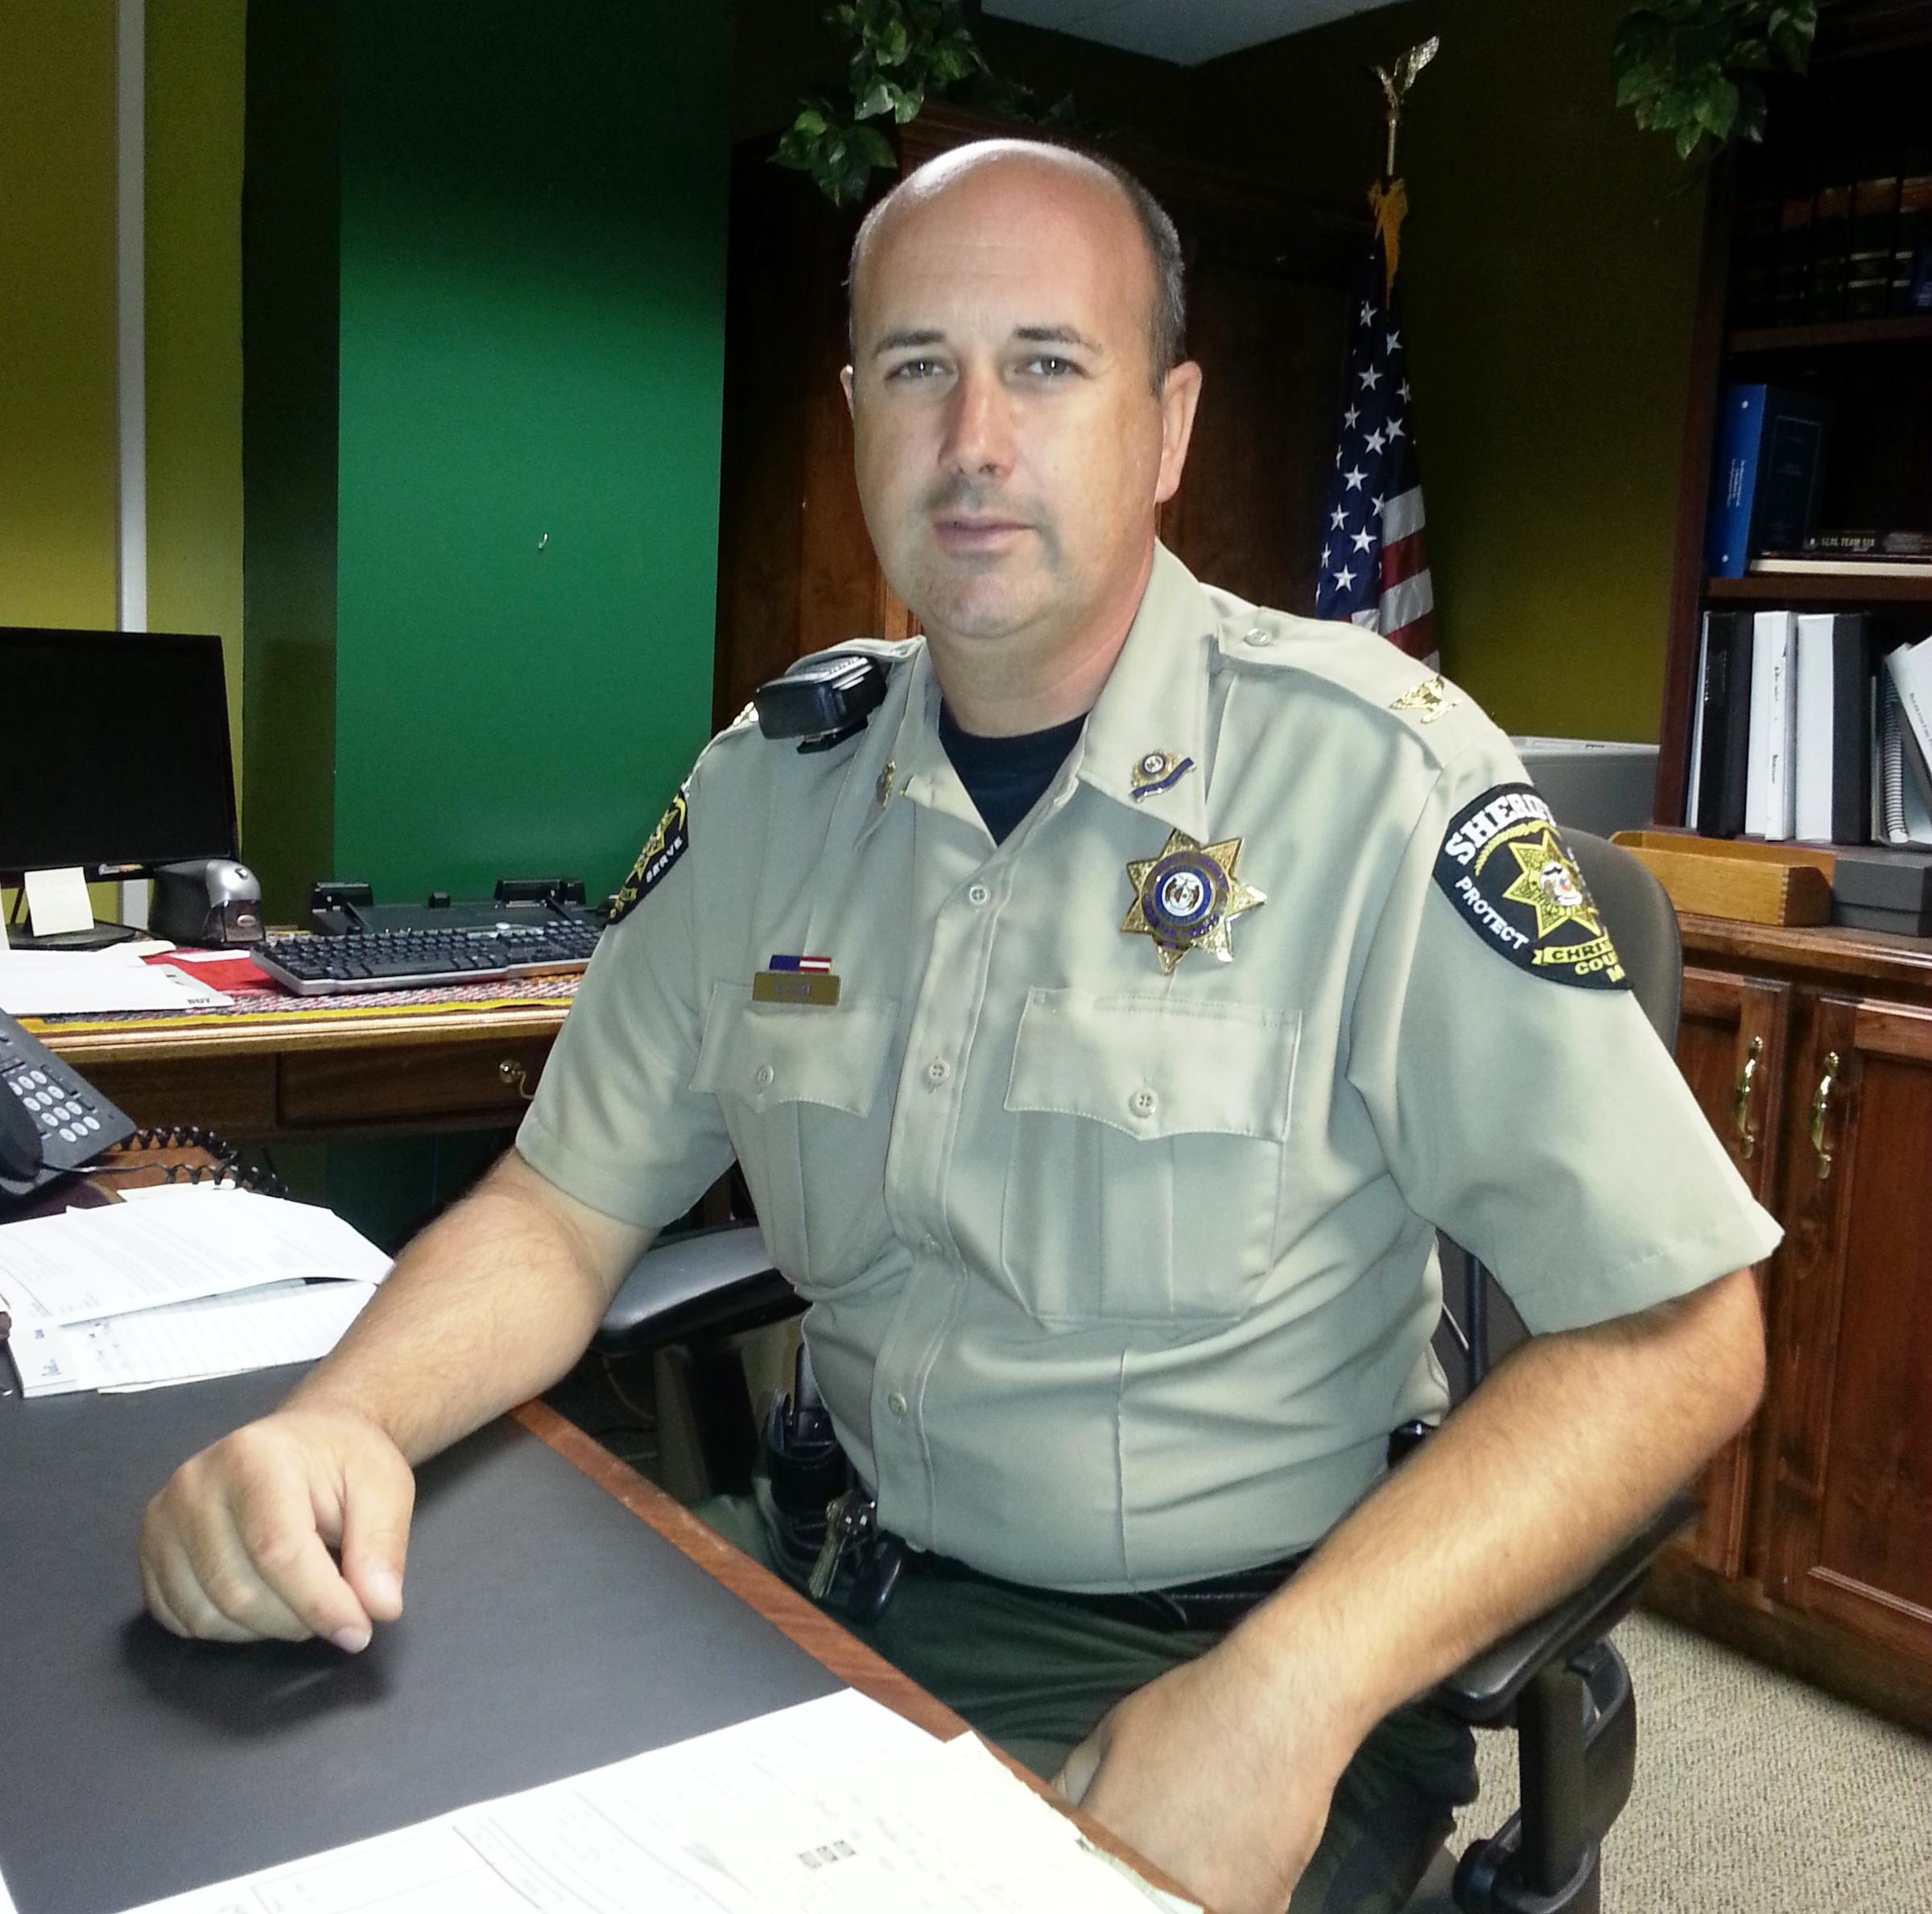 The Changes Being Made Under New Christian County Sheriff